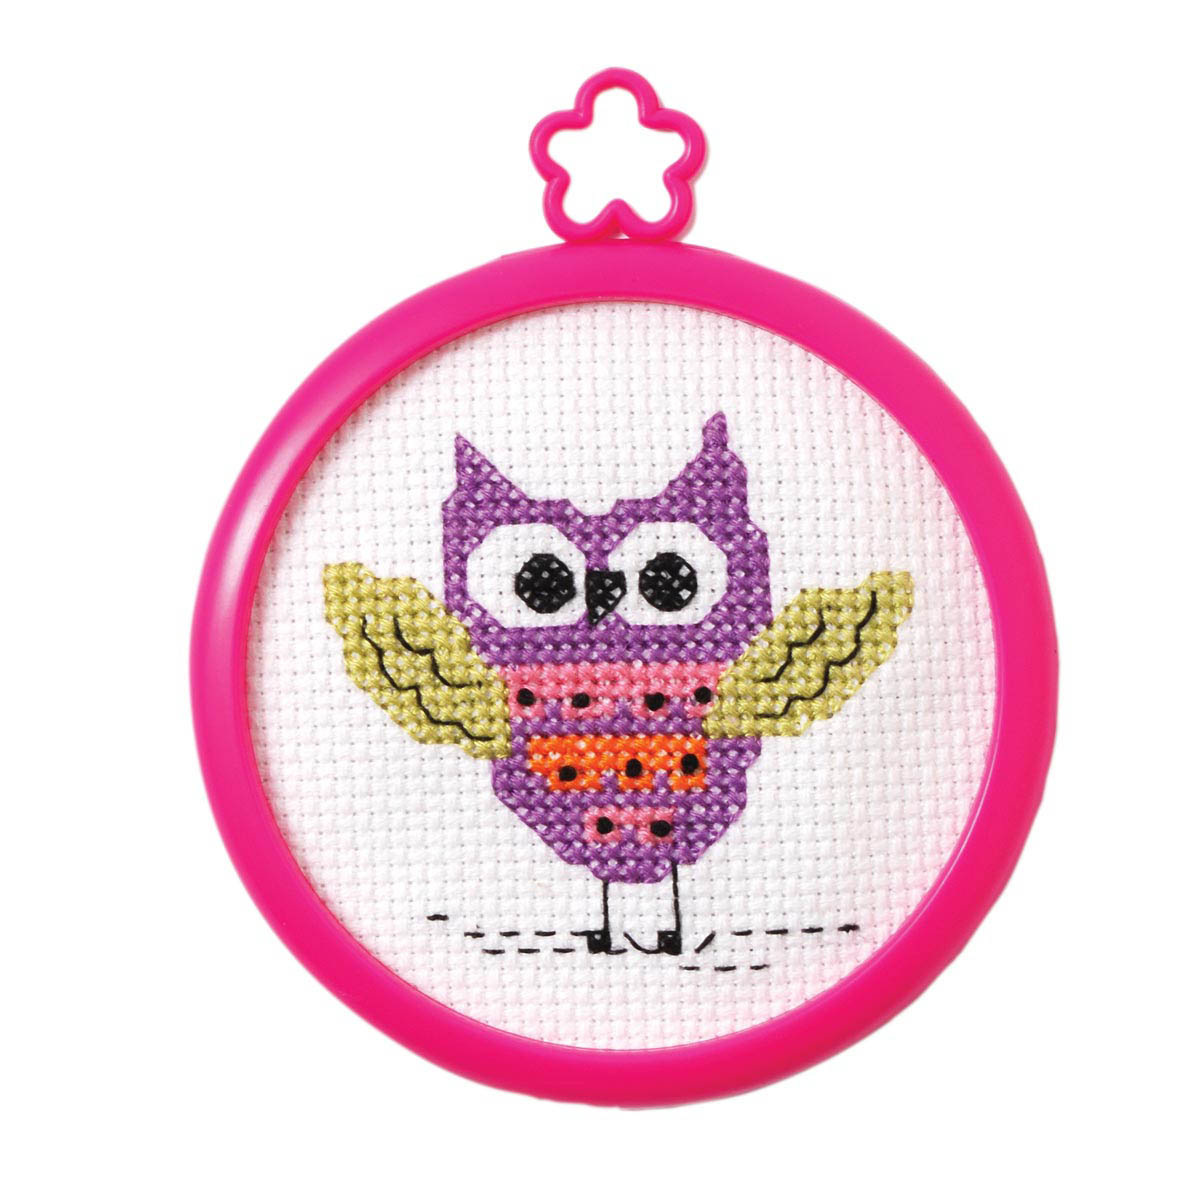 Bucilla ® My 1st Stitch™ - Counted Cross Stitch Kits - Mini - Owl